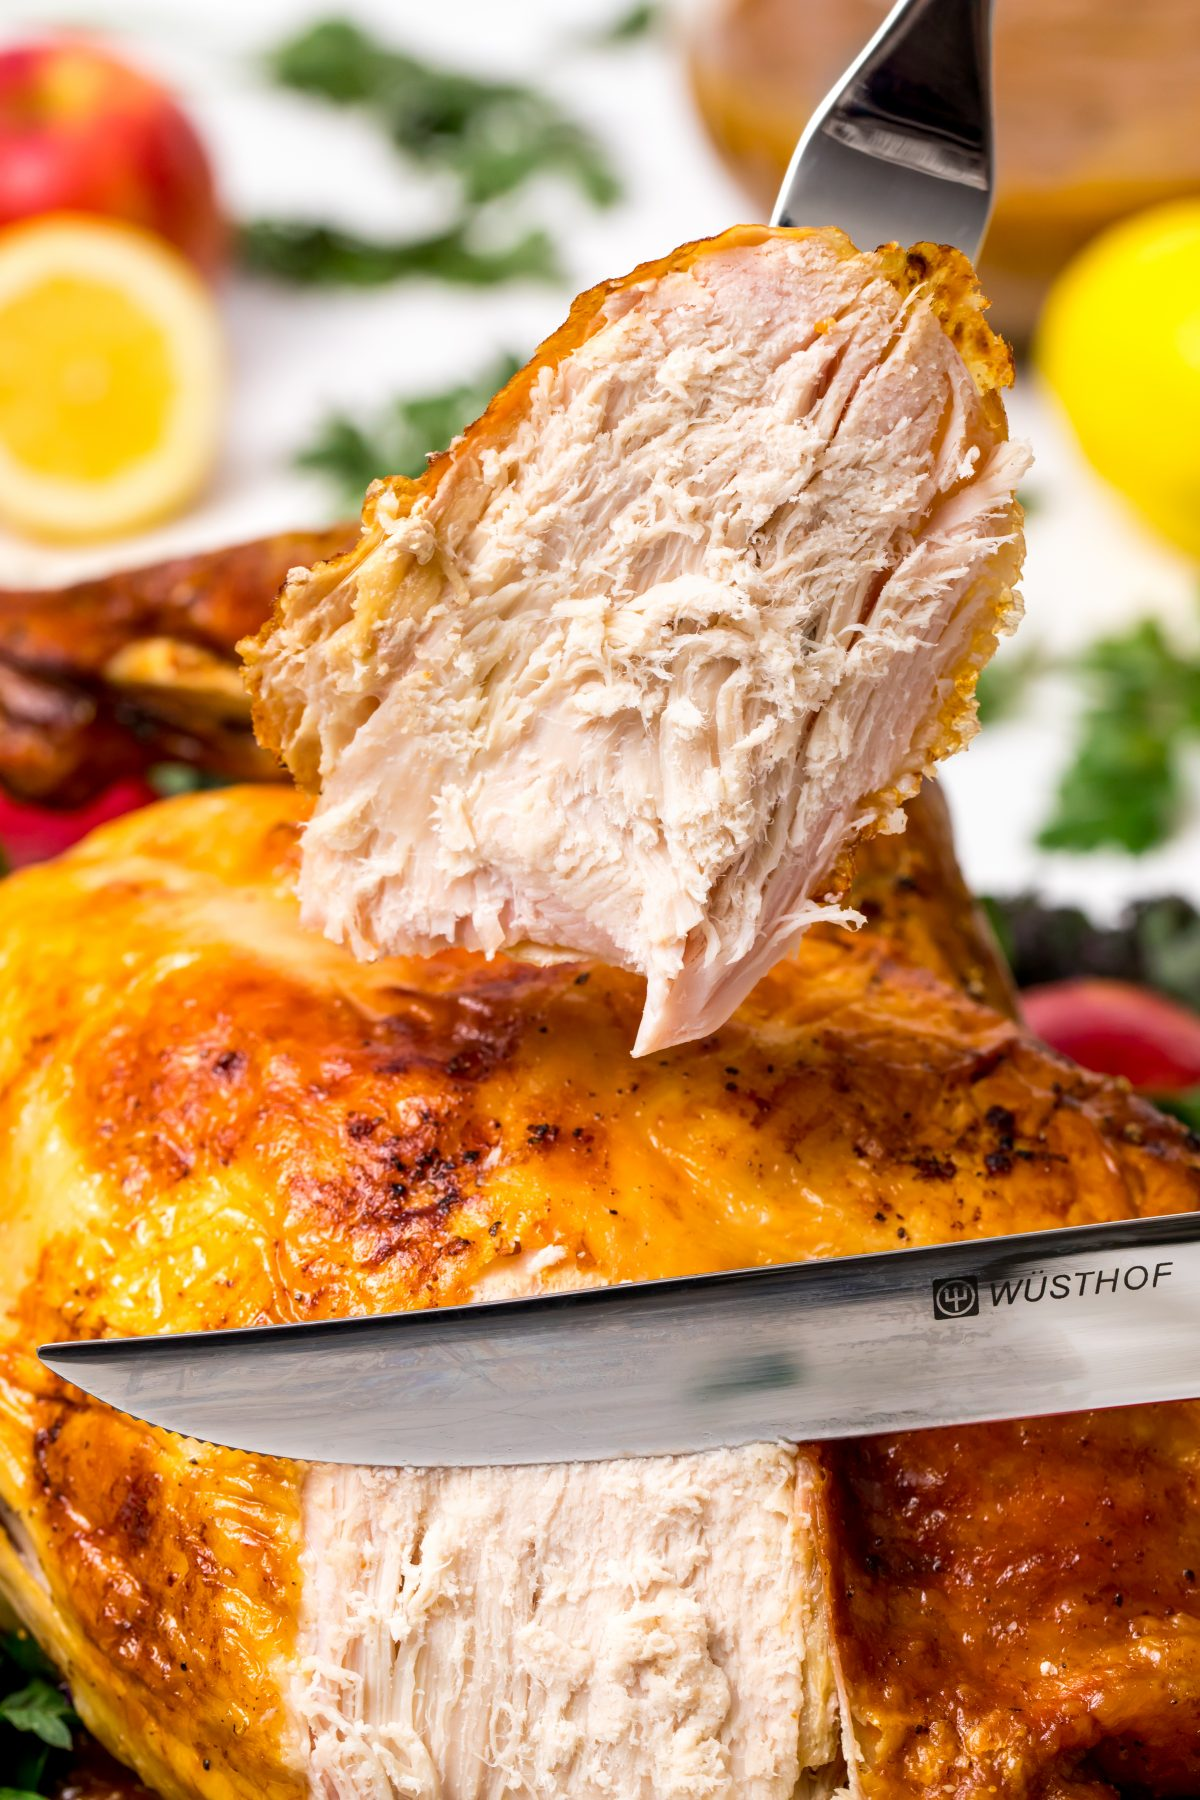 5D4B3288 - James Beard Roasted Turkey - Makes for a perfect holiday celebration!